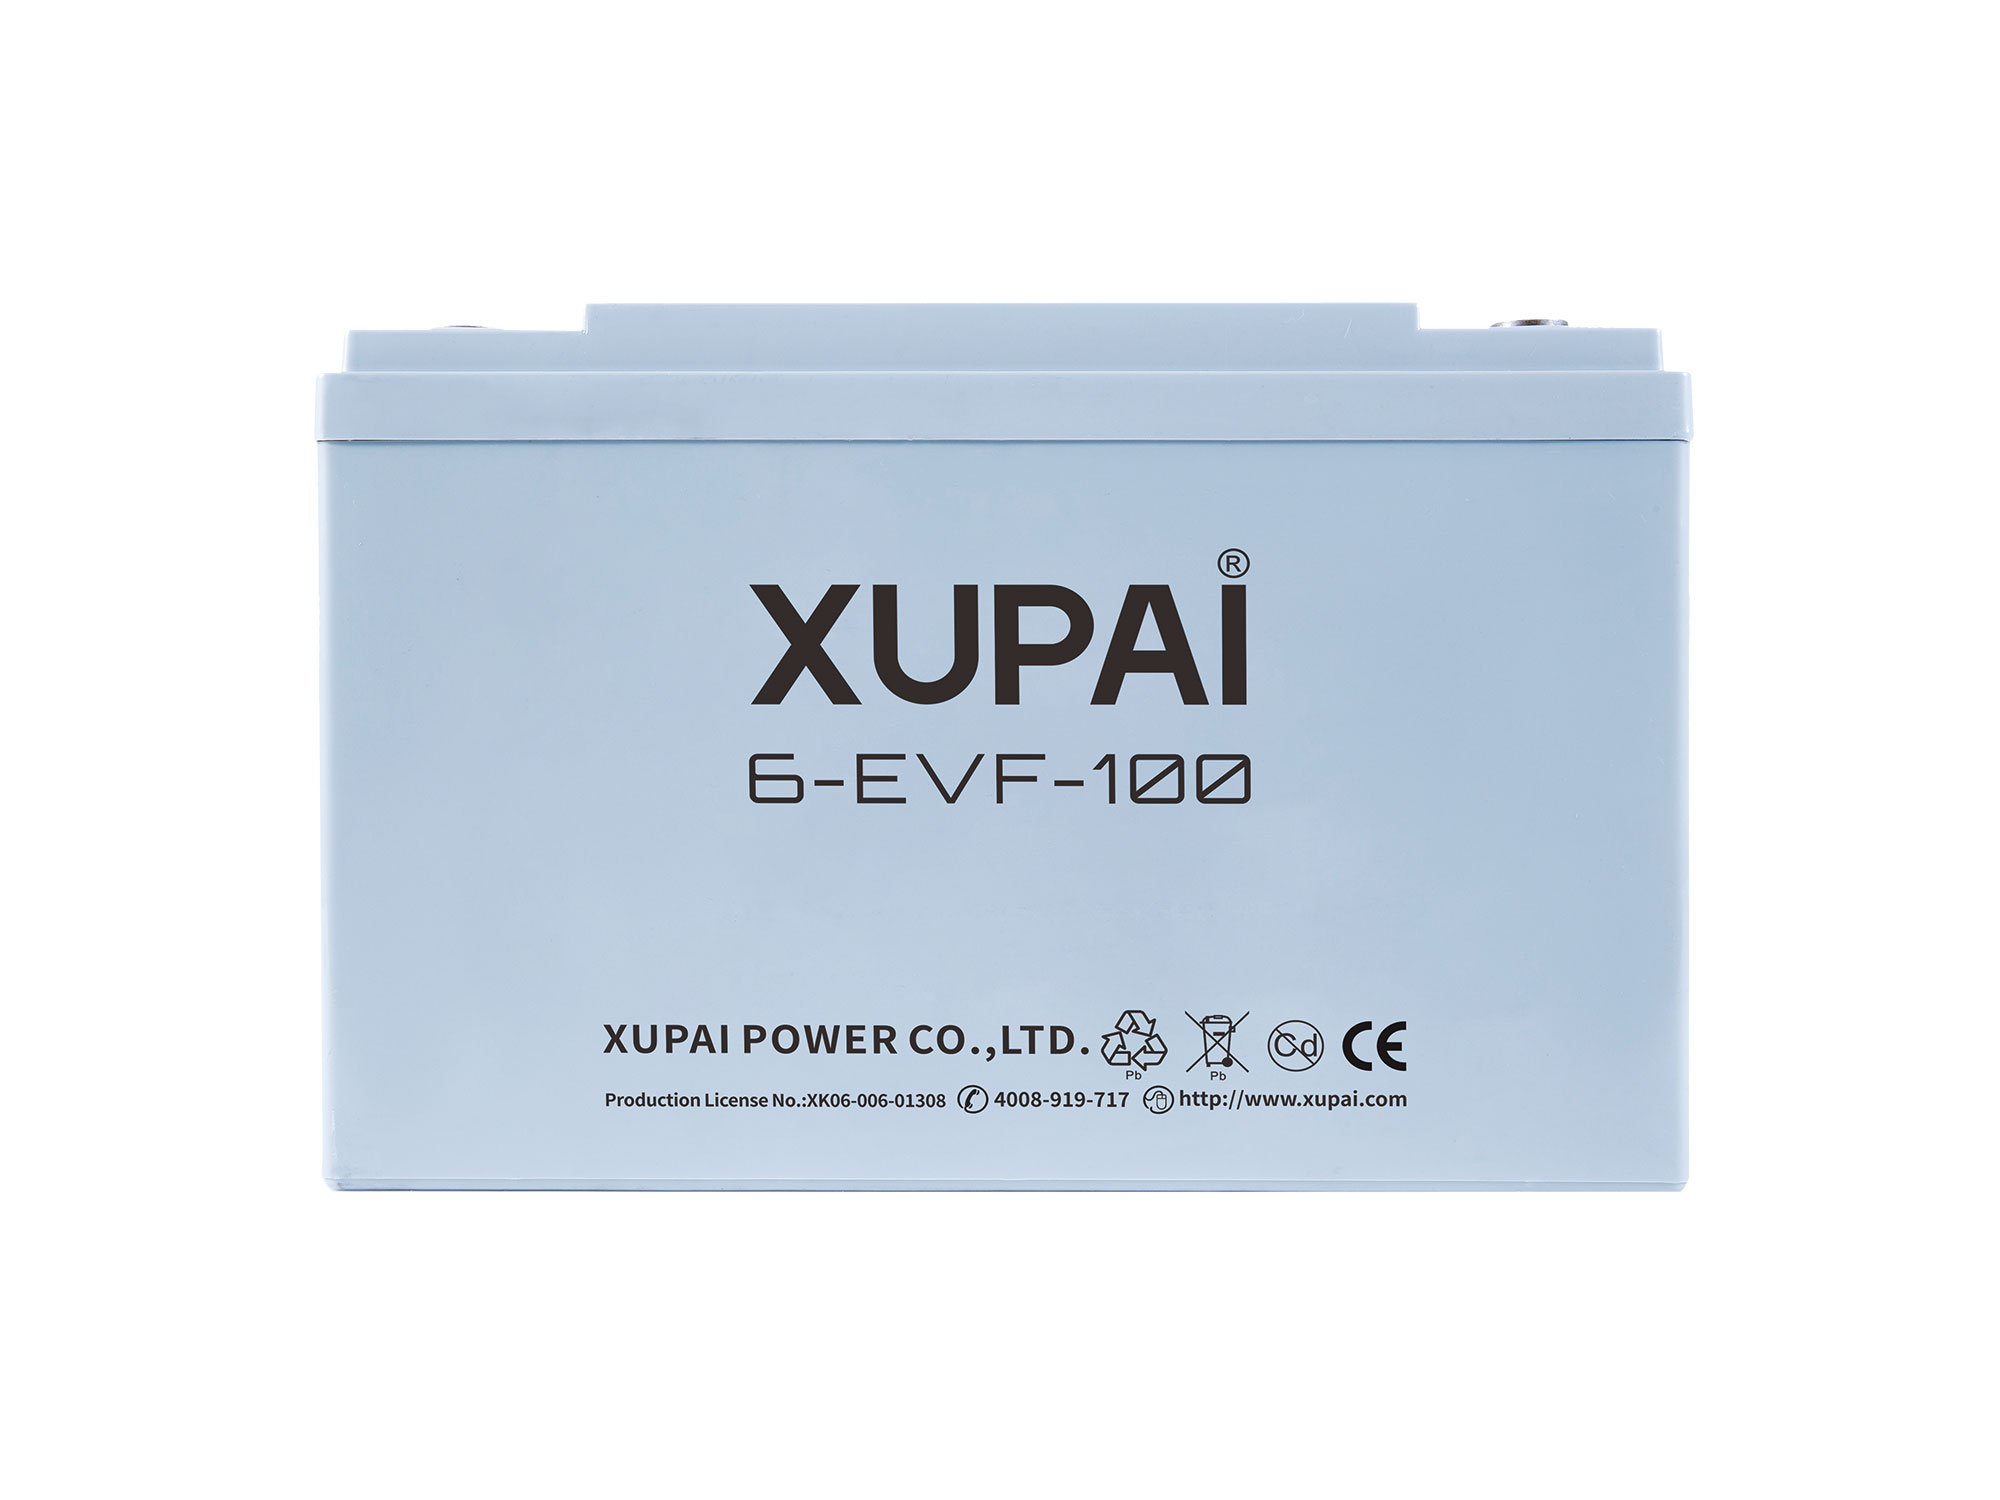 XUPAI 6-EVF-100 Lead acid batetry electric bicycle battery